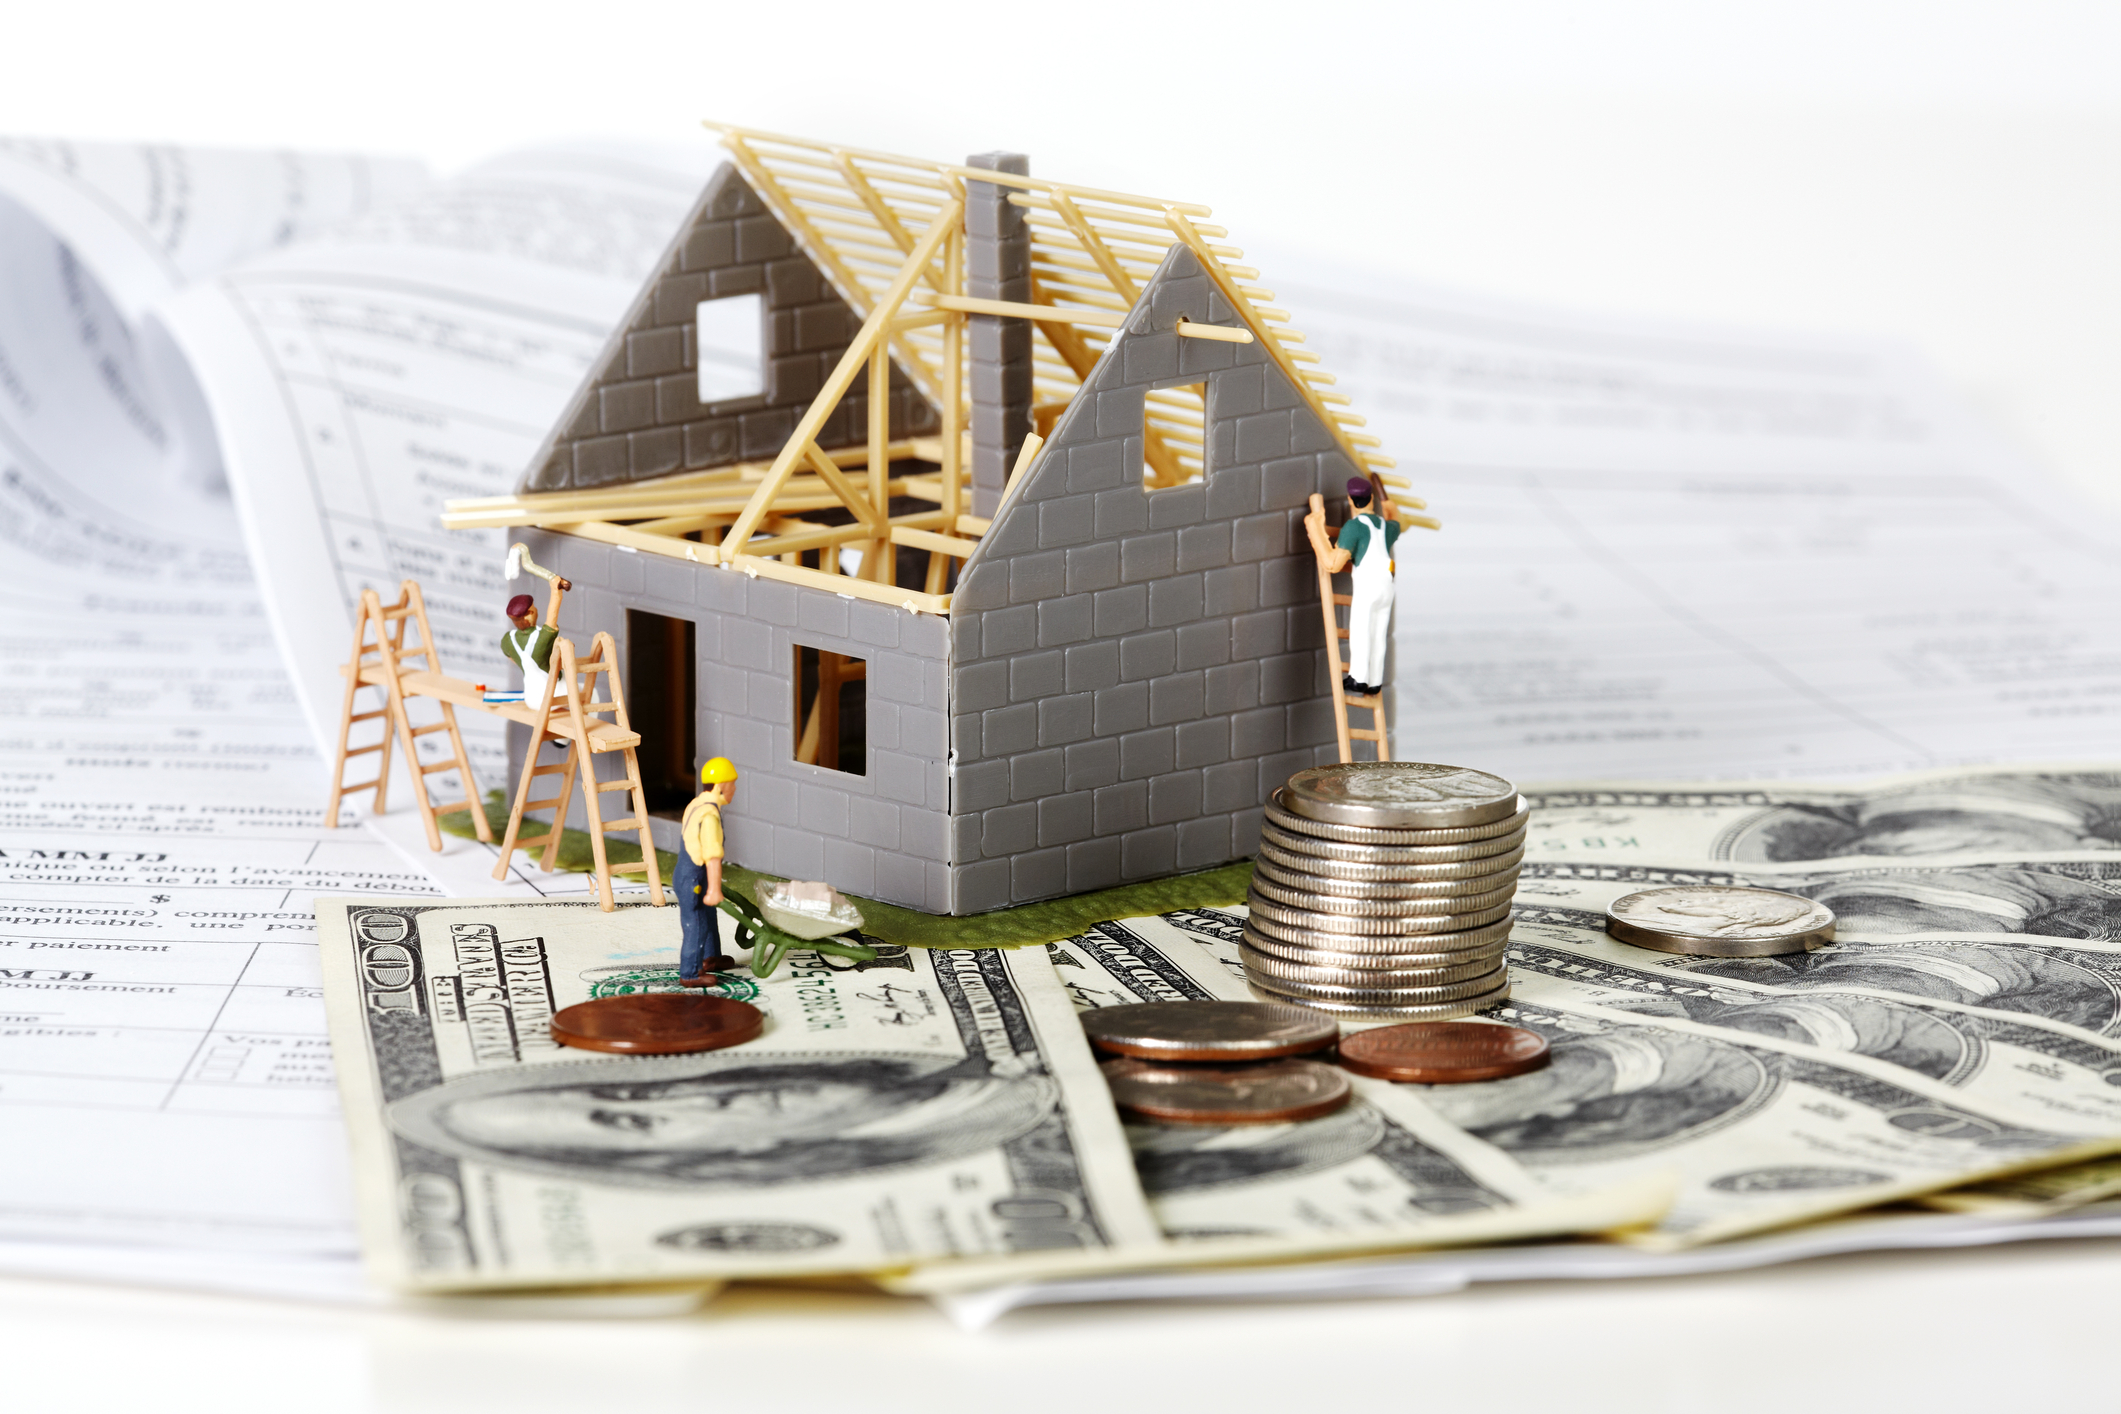 5 Ways To Save On Home Renovation Costs So You Don't Go